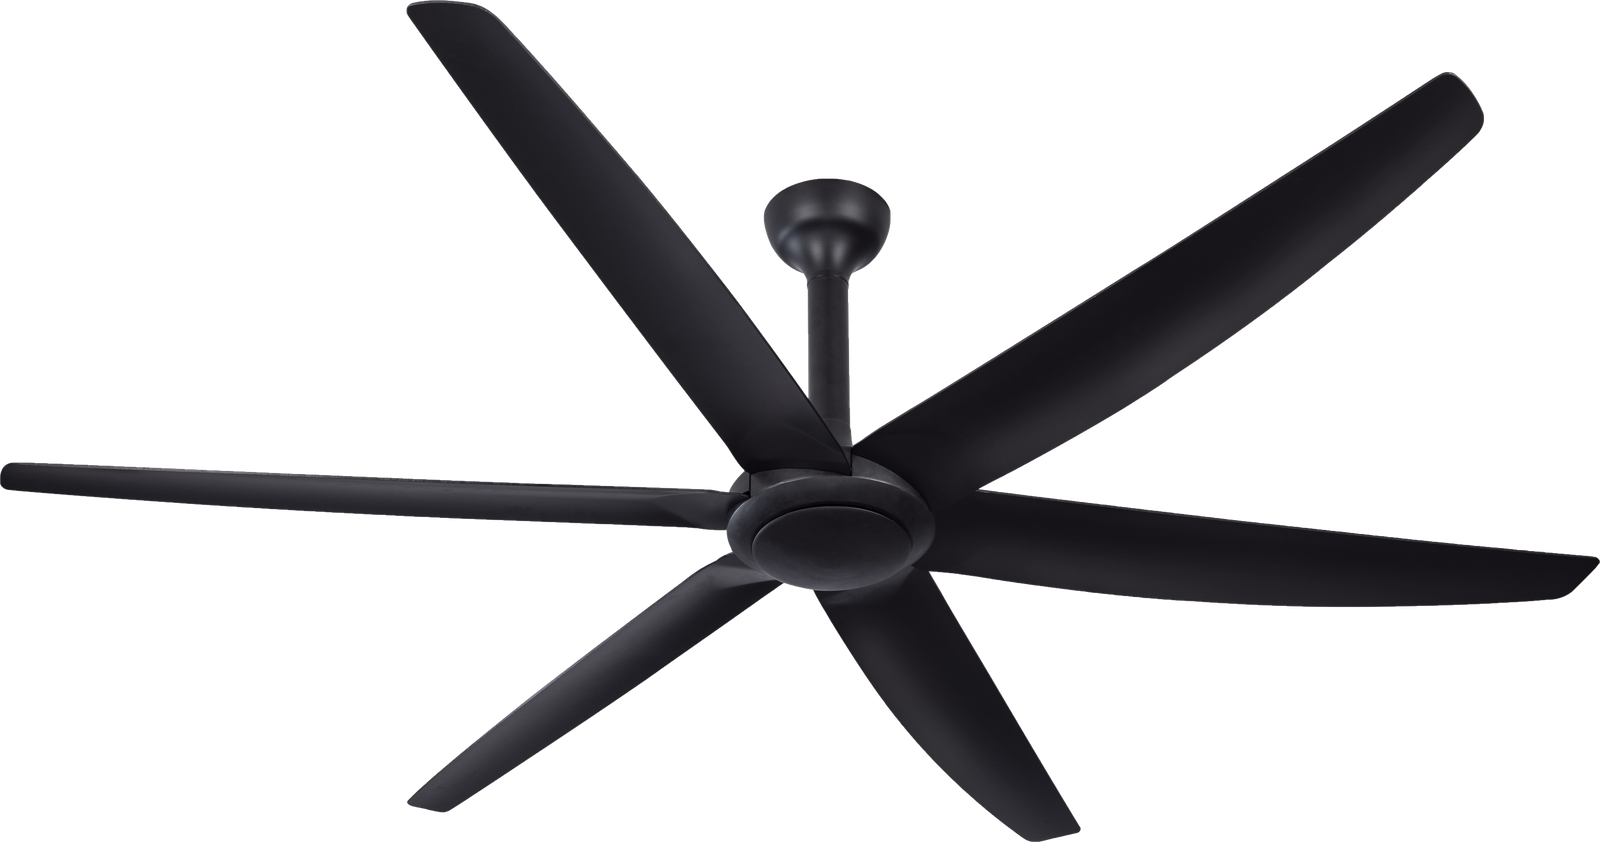 The Big Fan Matt Black with Black Blades Ceiling Fan